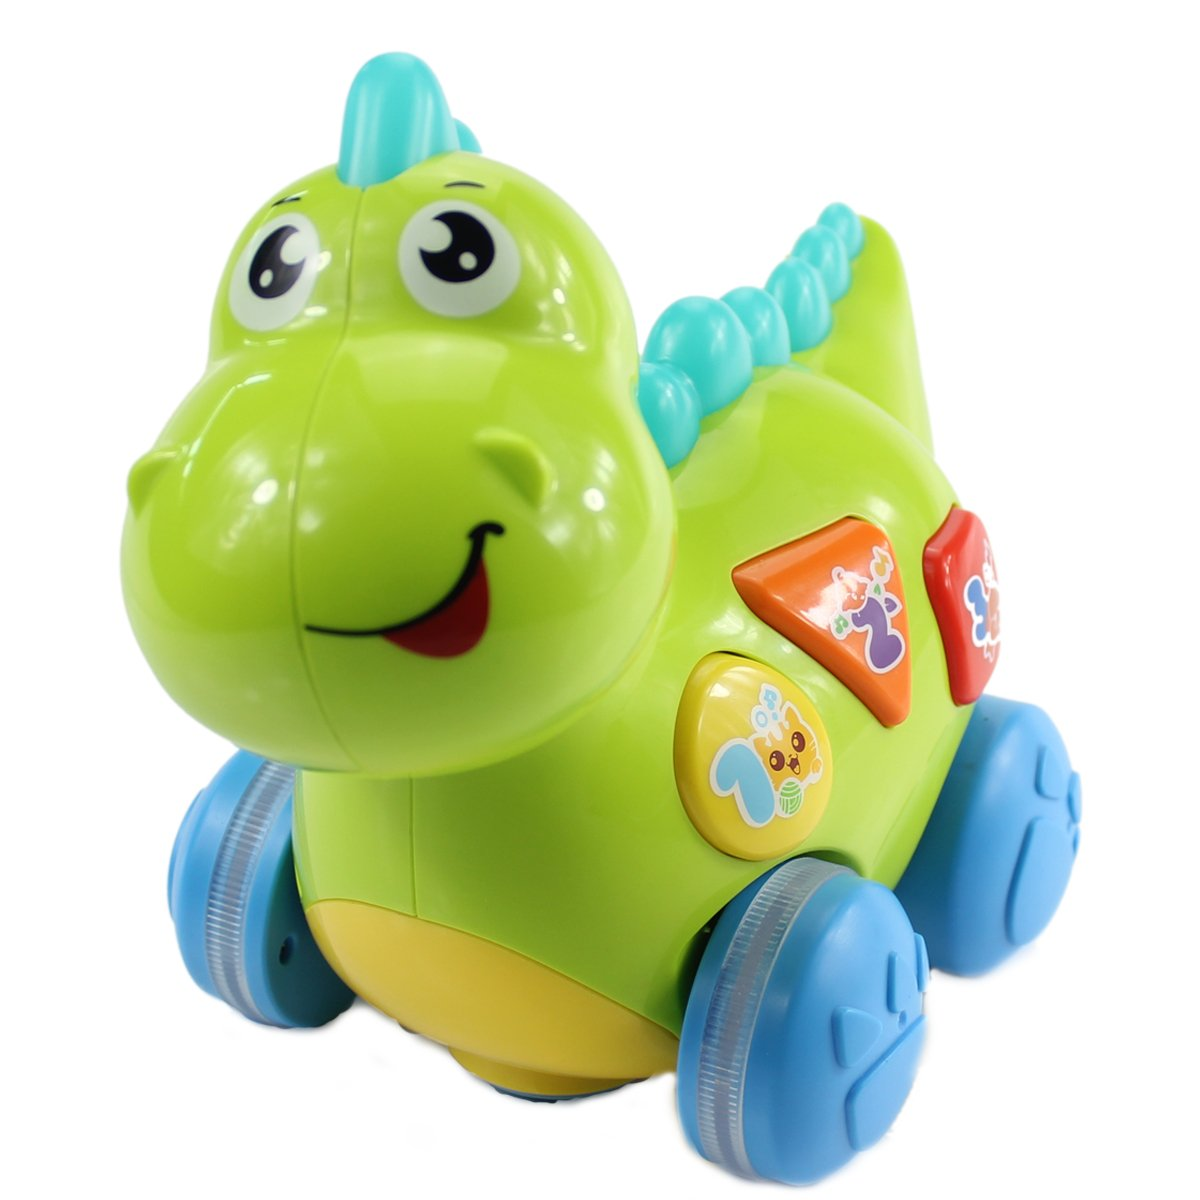 fisca Baby Toys Musical Walking Dinosaur for Babies & Toddlers